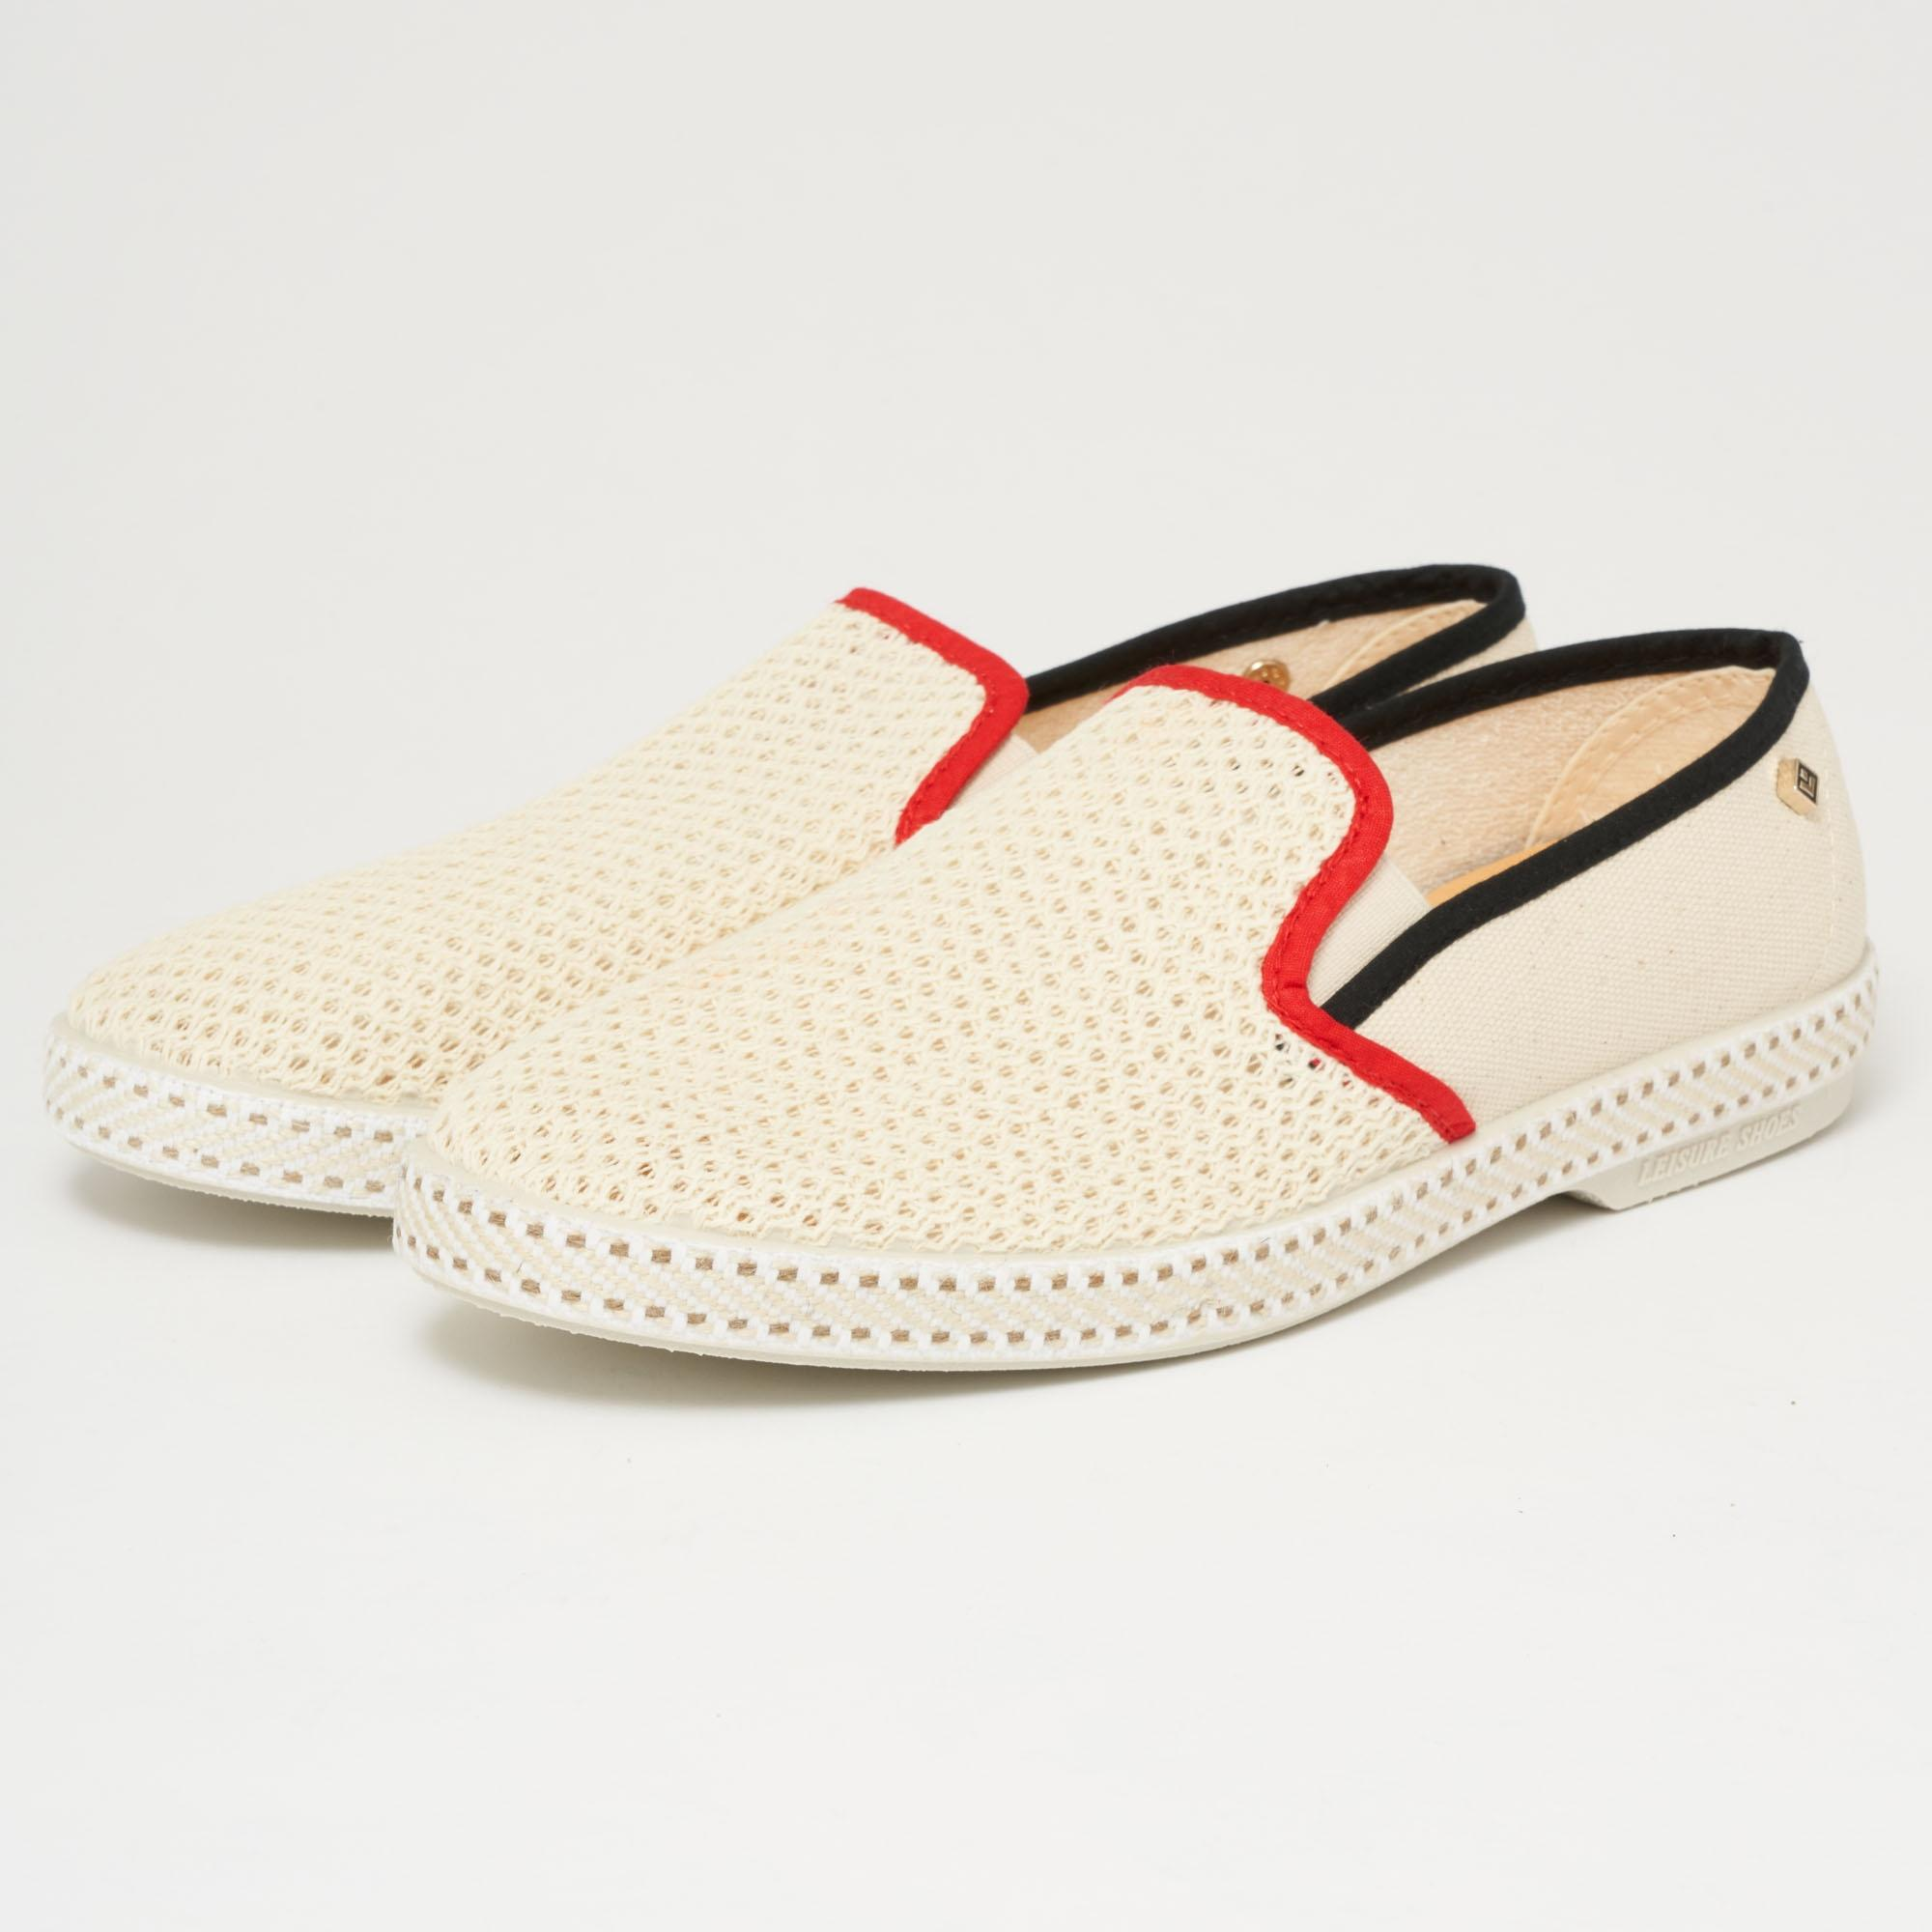 Classic 20 mesh and canvas loafers Rivieras qQsIwTSP7